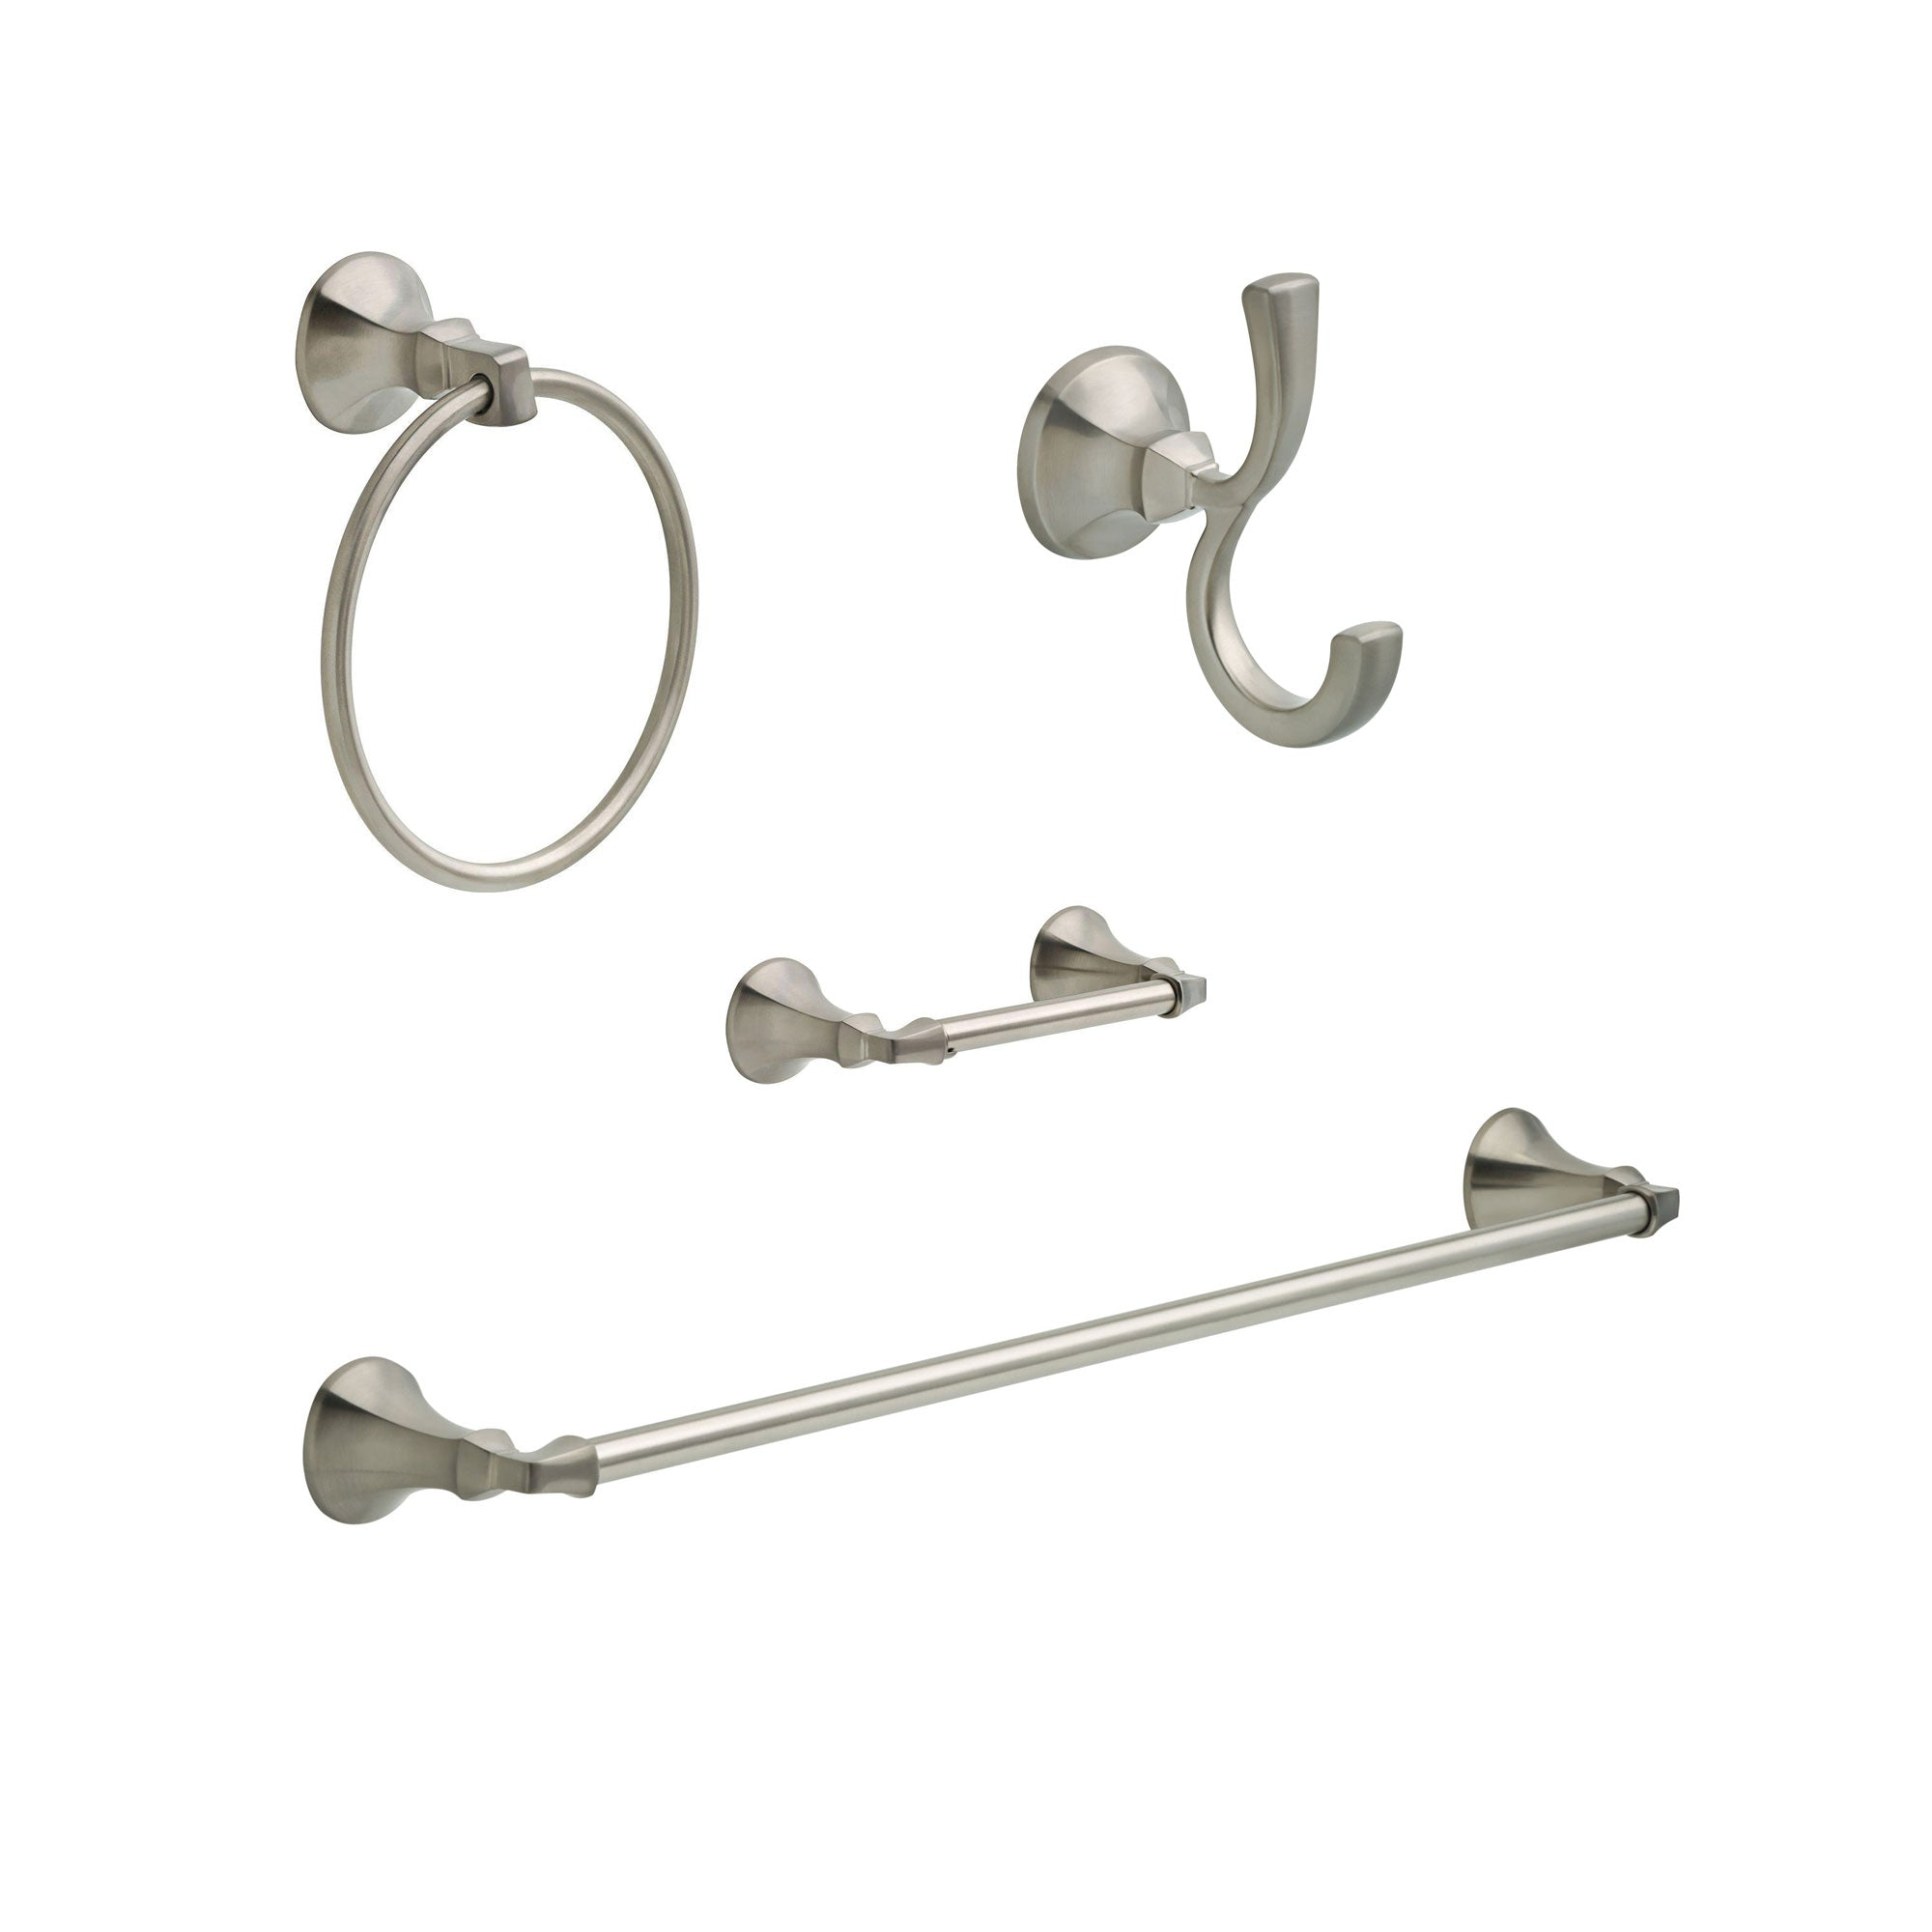 "Delta Ashlyn Stainless Steel Finish STANDARD Bathroom Accessory Set Includes: 24"" Towel Bar, Toilet Paper Holder, Robe Hook, and Towel Ring D10085AP"